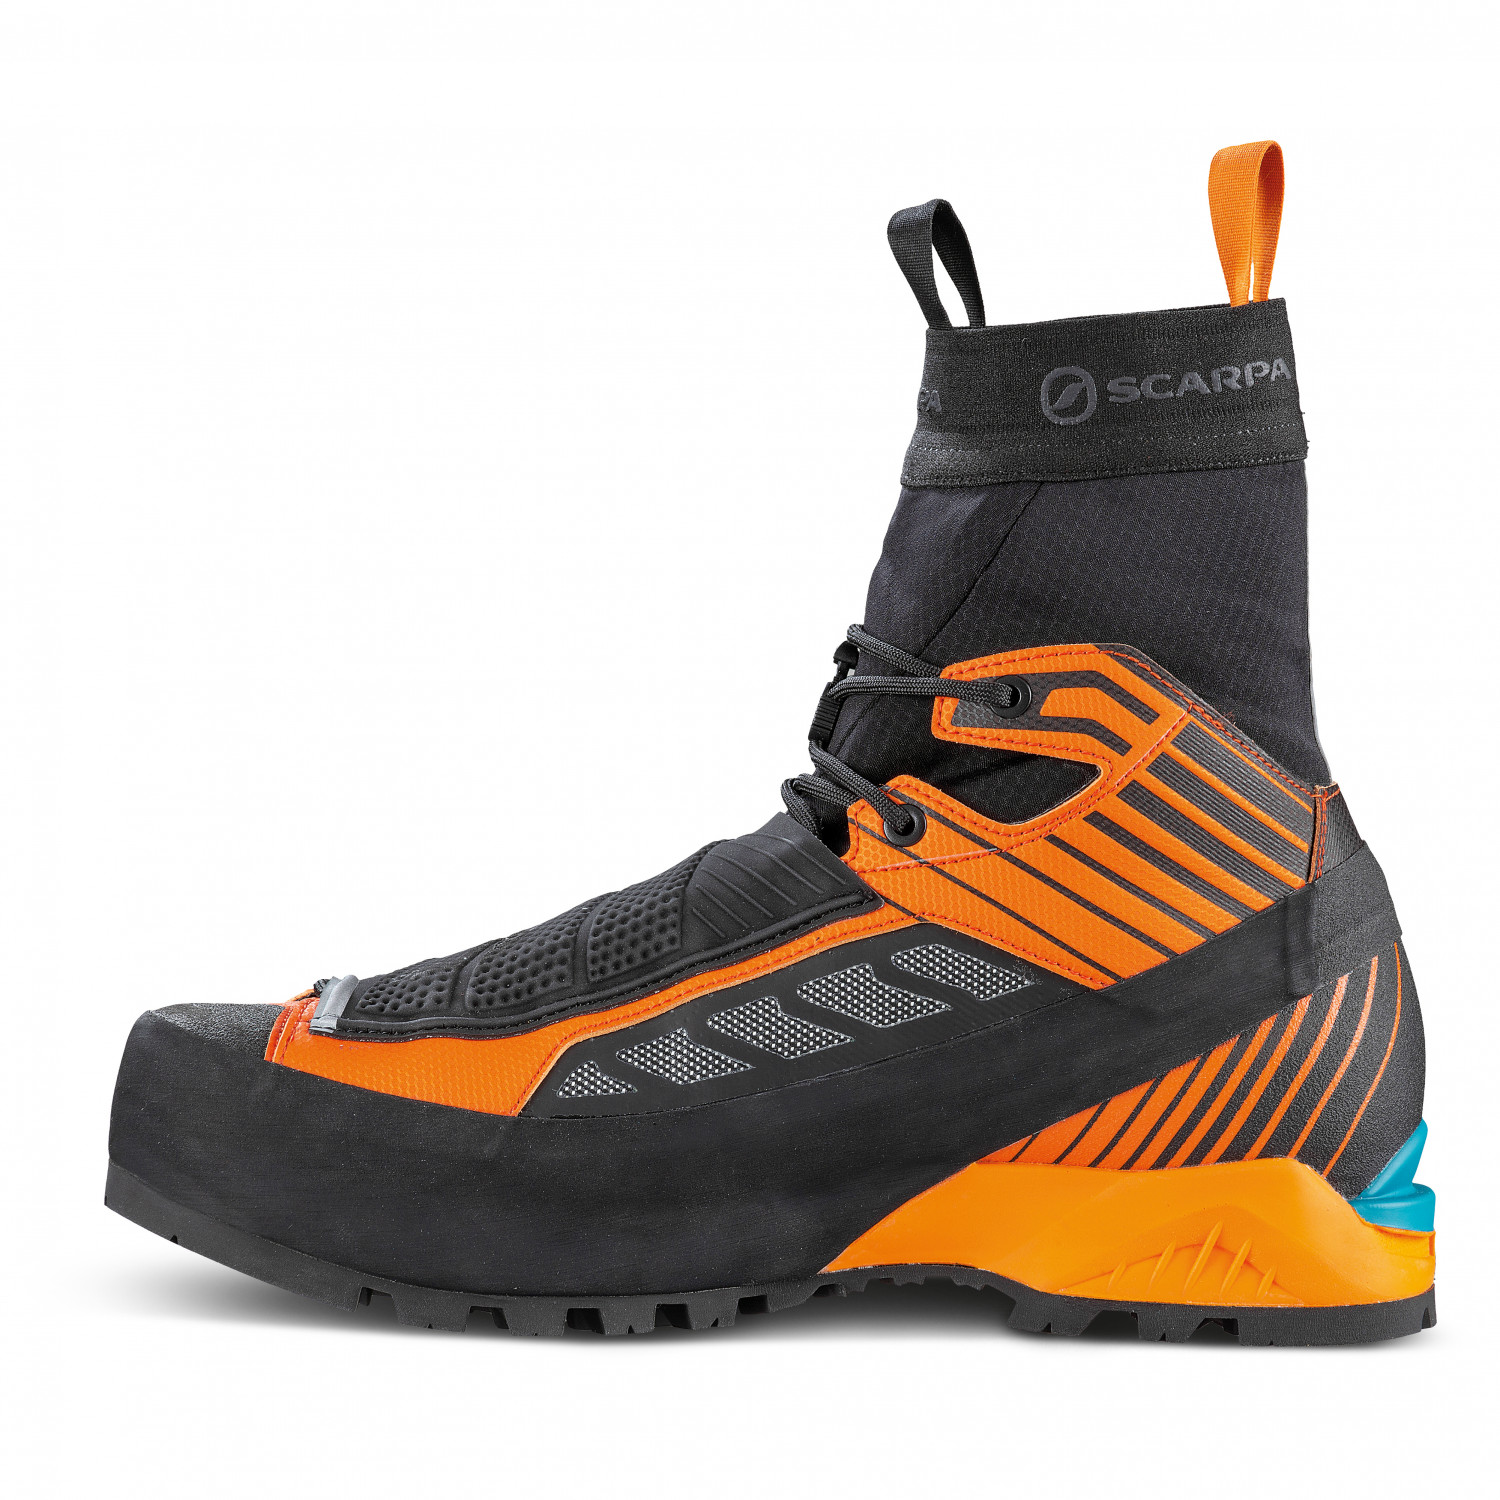 Scarpa Ribelle Tech Od Mountaineering Boots Men S Free